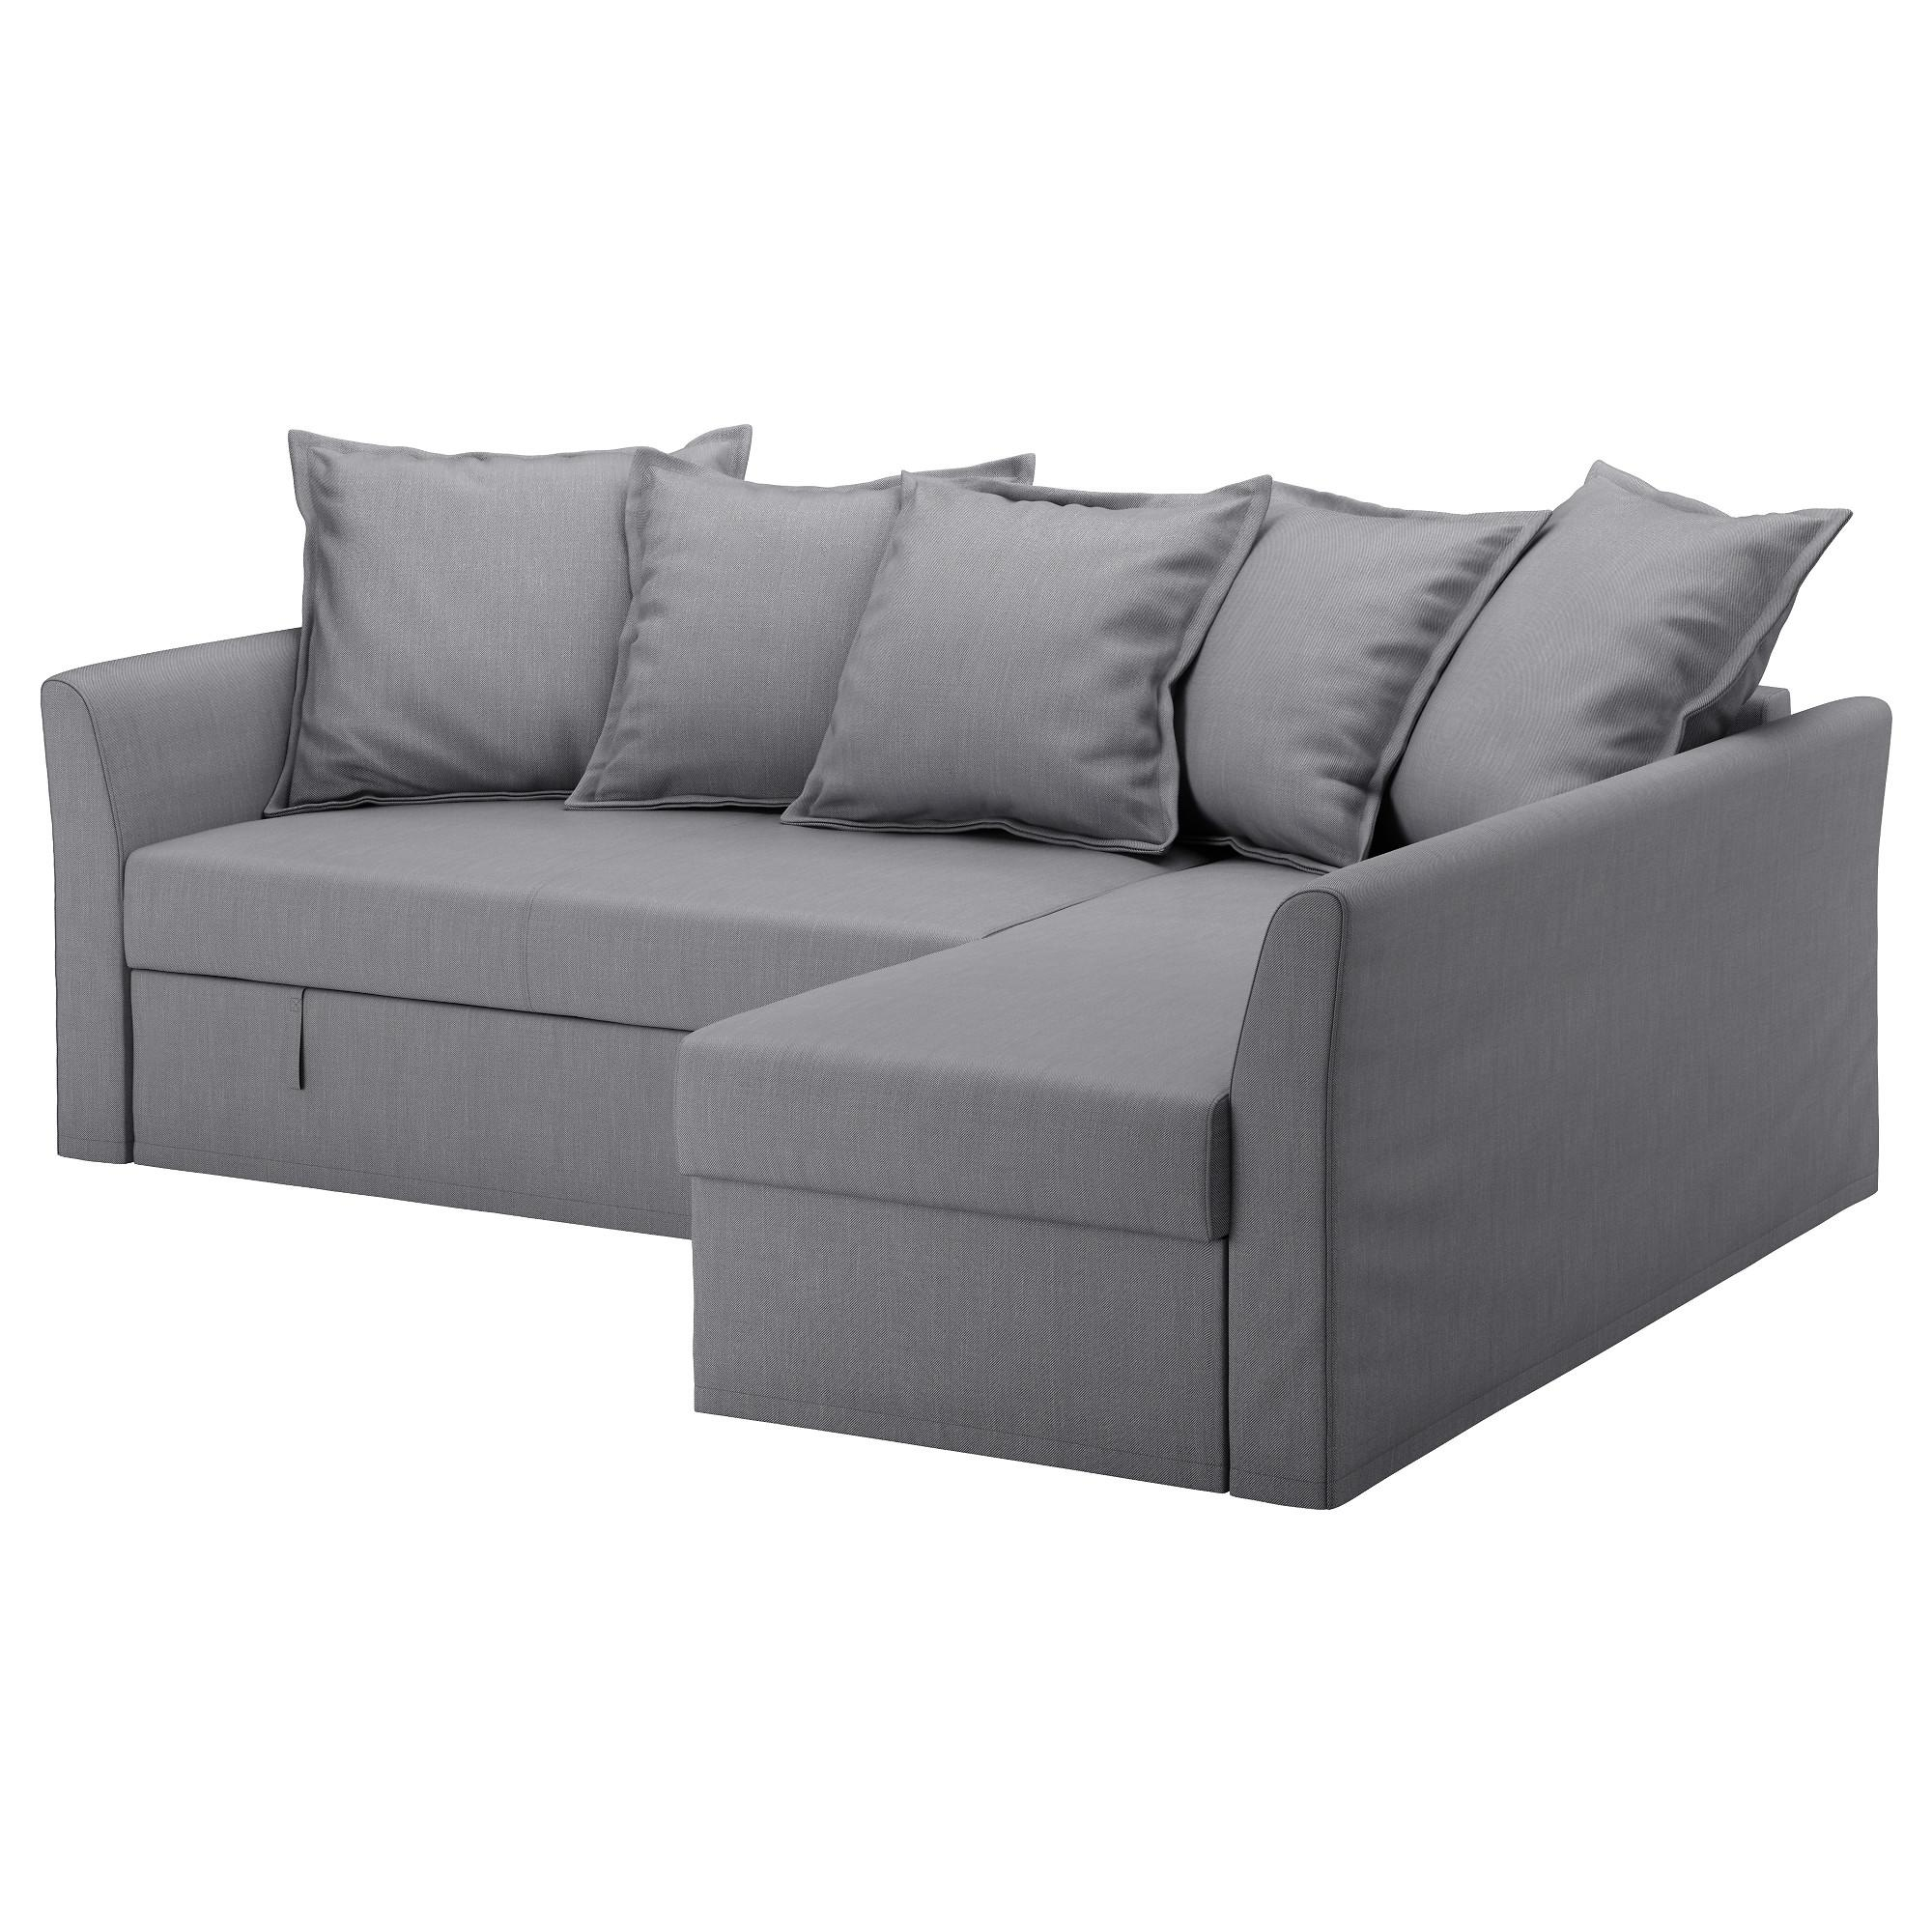 Sofa Beds & Futons | Ikea Throughout Ikea Single Sofa Beds (View 12 of 23)